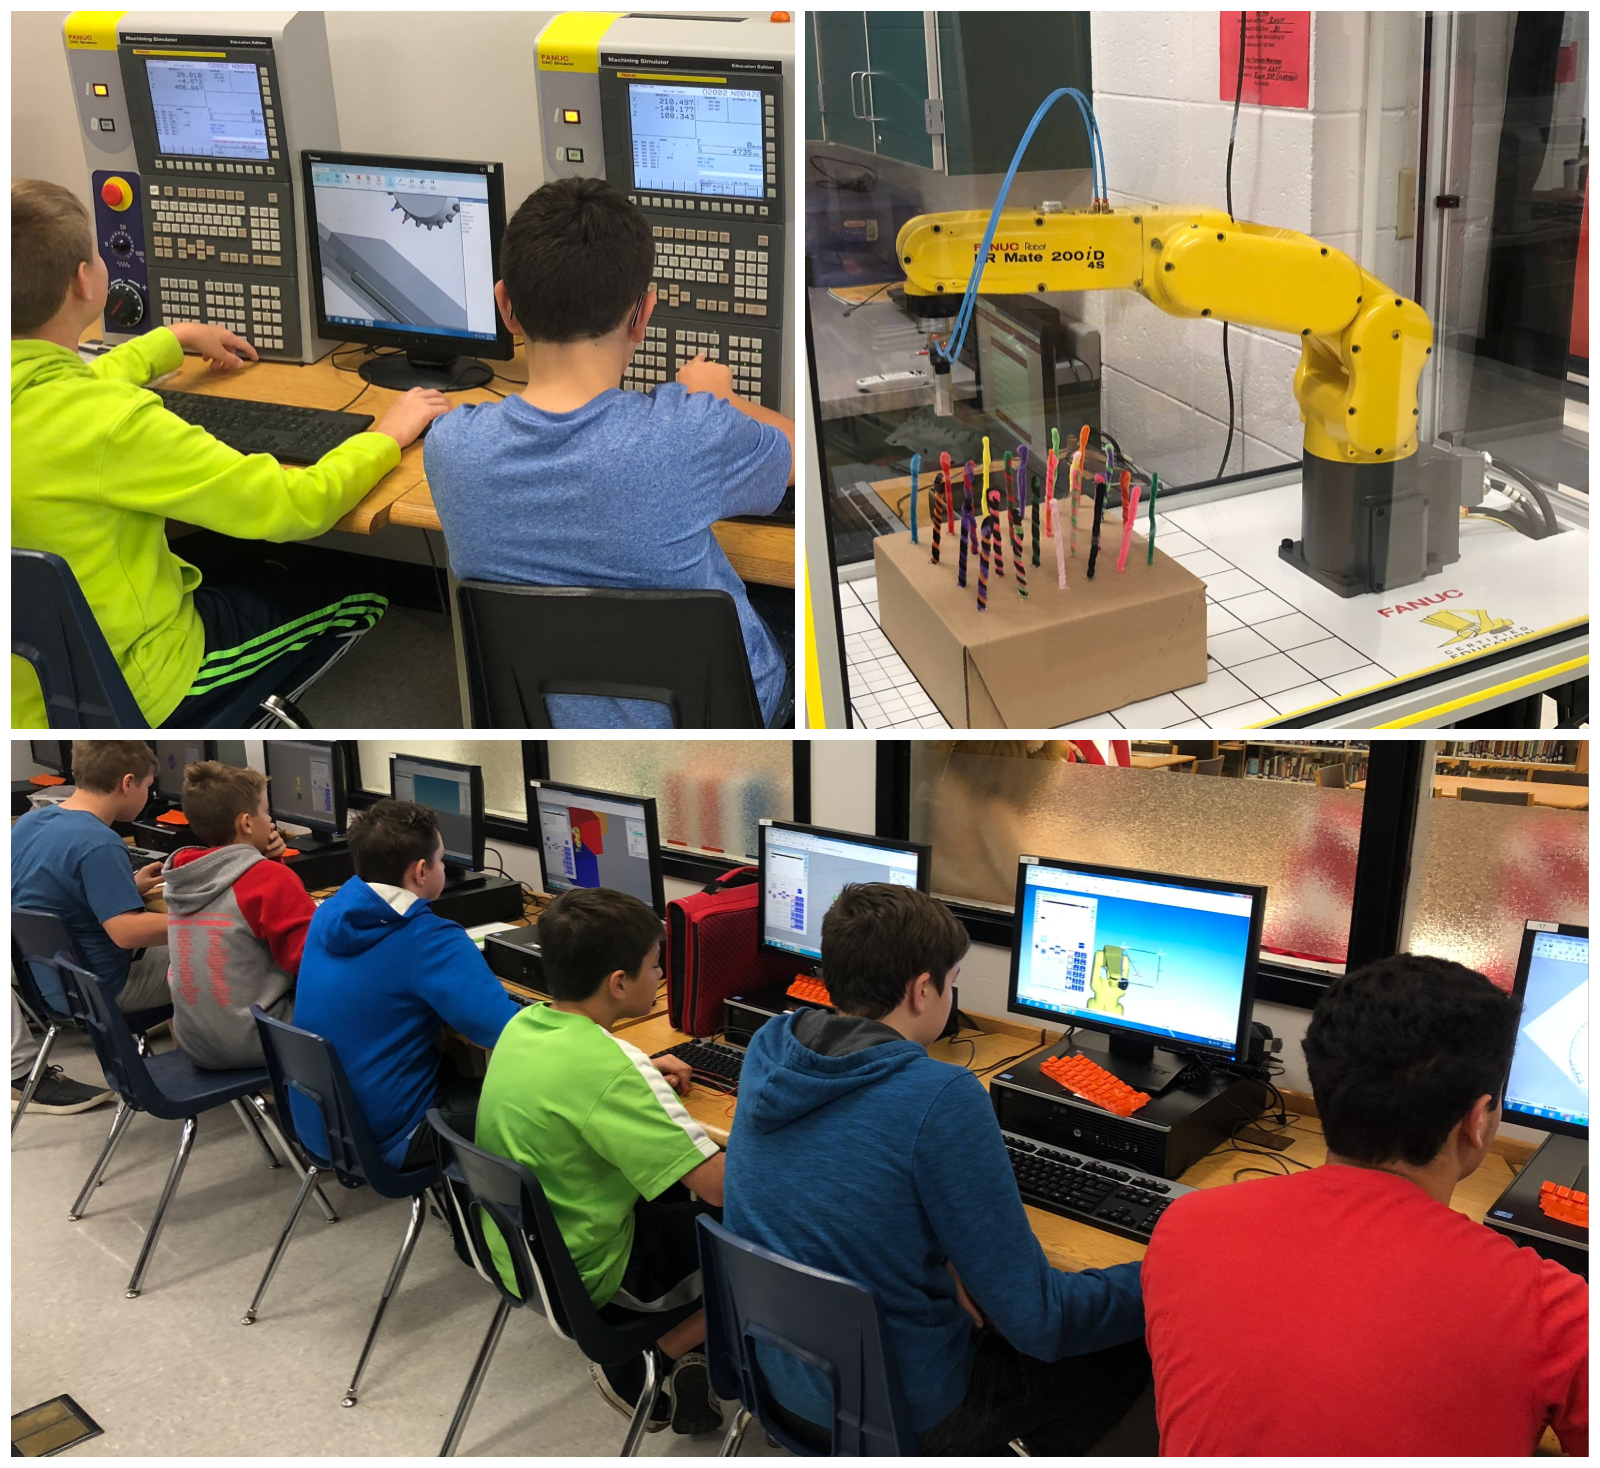 Lomira Middle School students work with ROBOGUIDE software, CNC Simulators, and FANUC Cert Cart